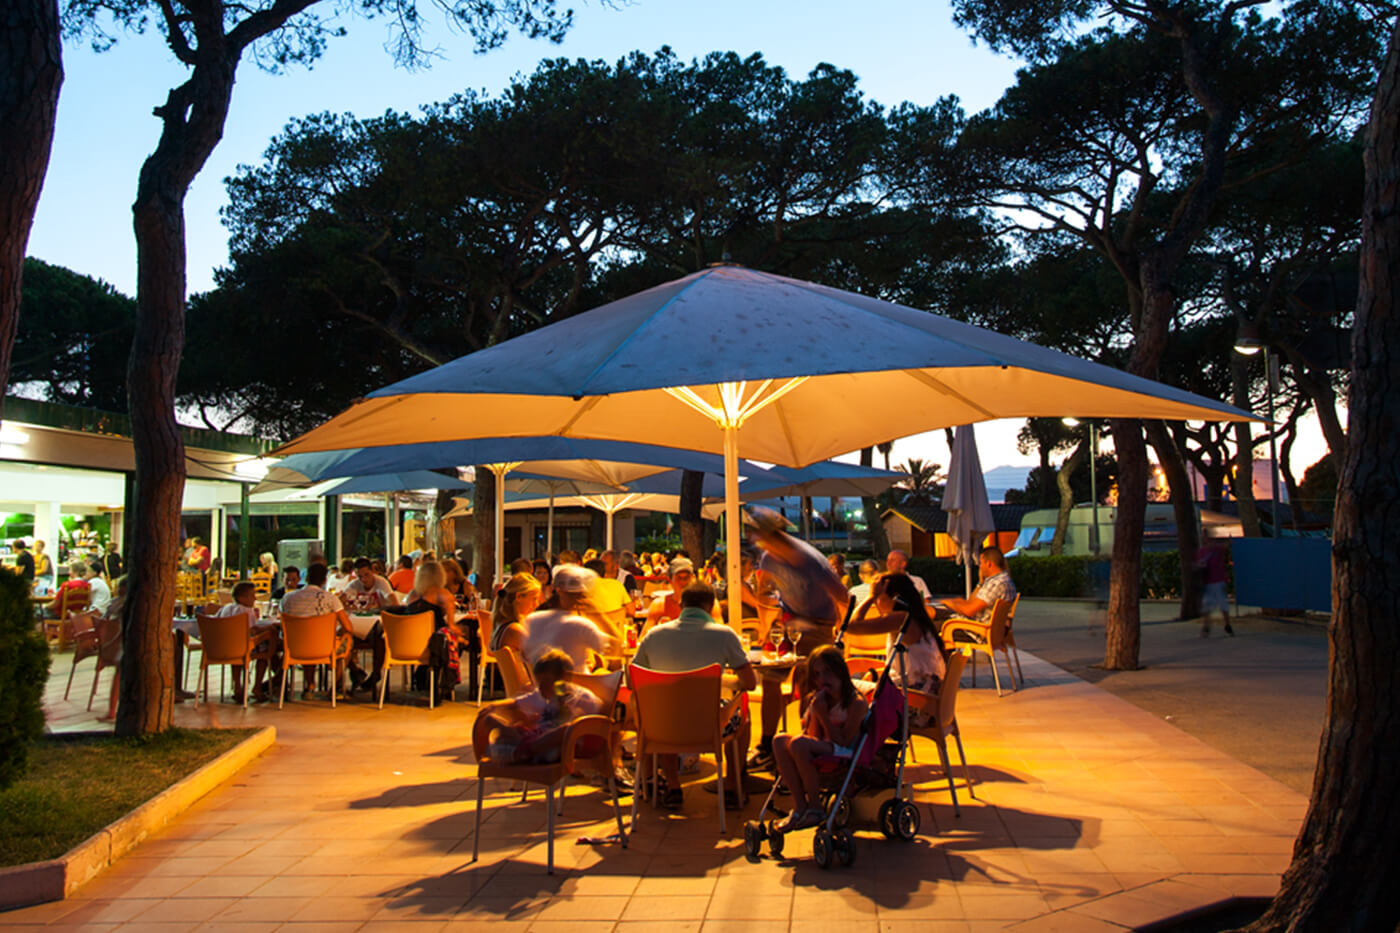 Camping El Pinar the best services in the Costa Brava. Beachfront campsite for the whole family